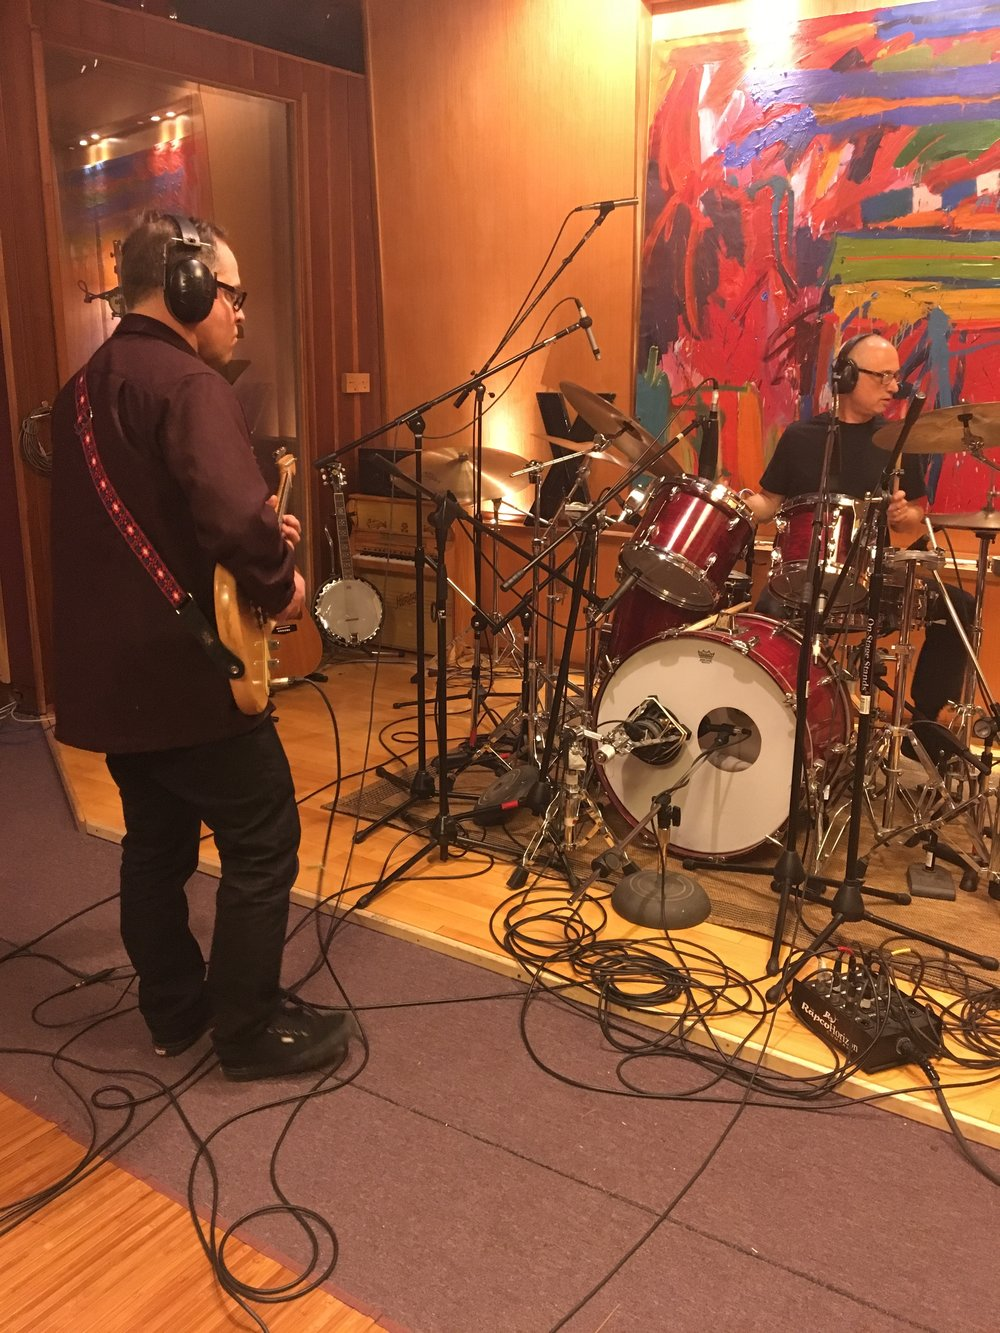 Starting basic tracks with D.J. Bonebrake at Travis Dickerson Recording, Chatsworth, CA, April 2017. The yet-to-be named project will also include Victor Krummenacher (bass) and Willie Aron (keyboards).